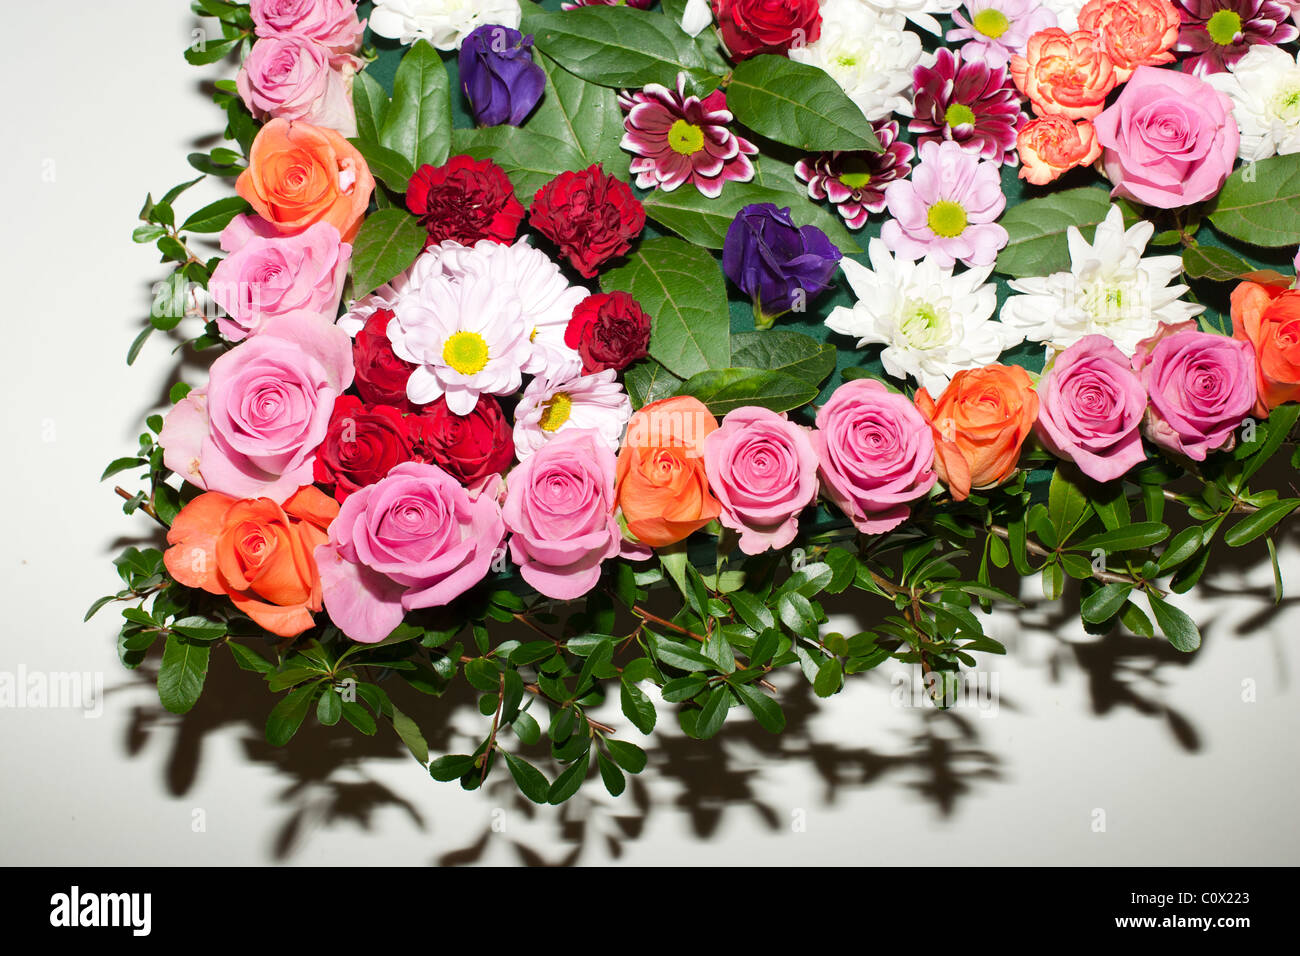 Heart shaped funeral flowers stock photo 34993115 alamy heart shaped funeral flowers izmirmasajfo